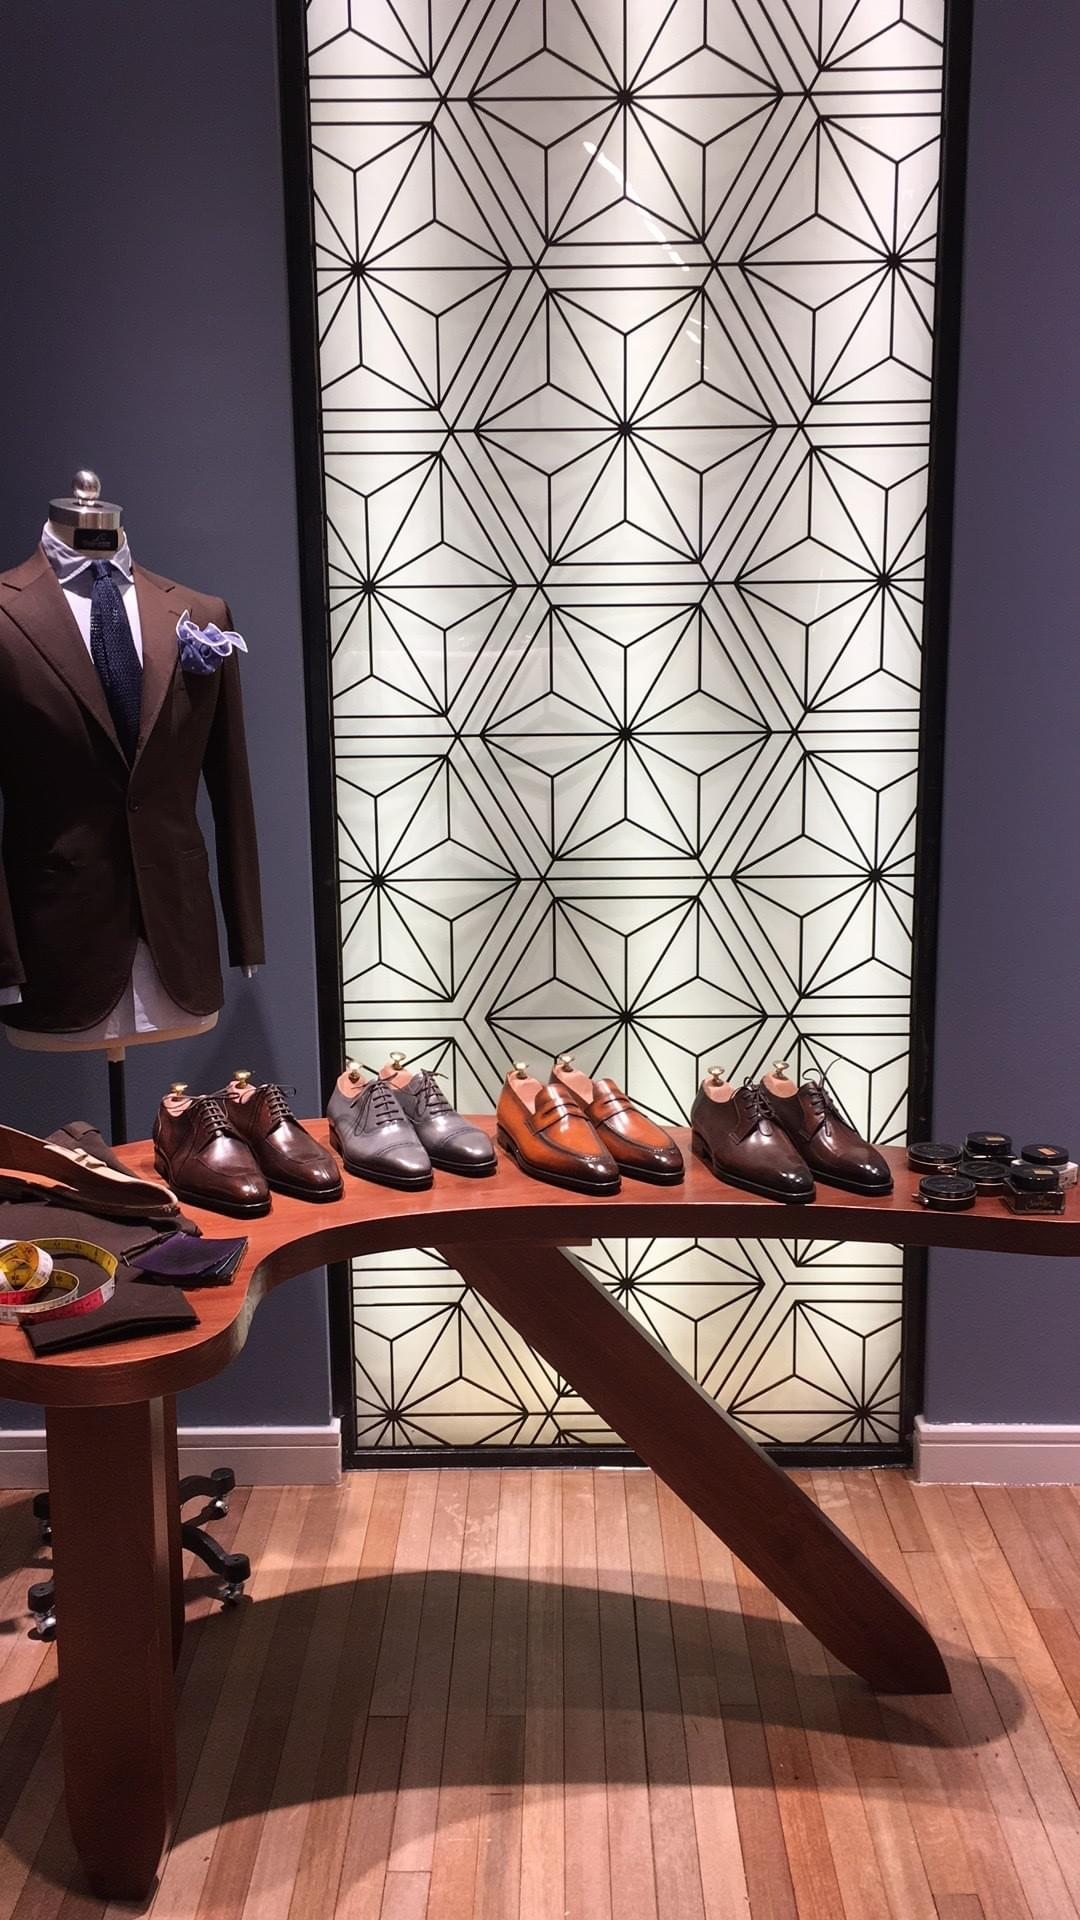 Barre et Brunel Footwear in Shanghai at Lancer Bespoke